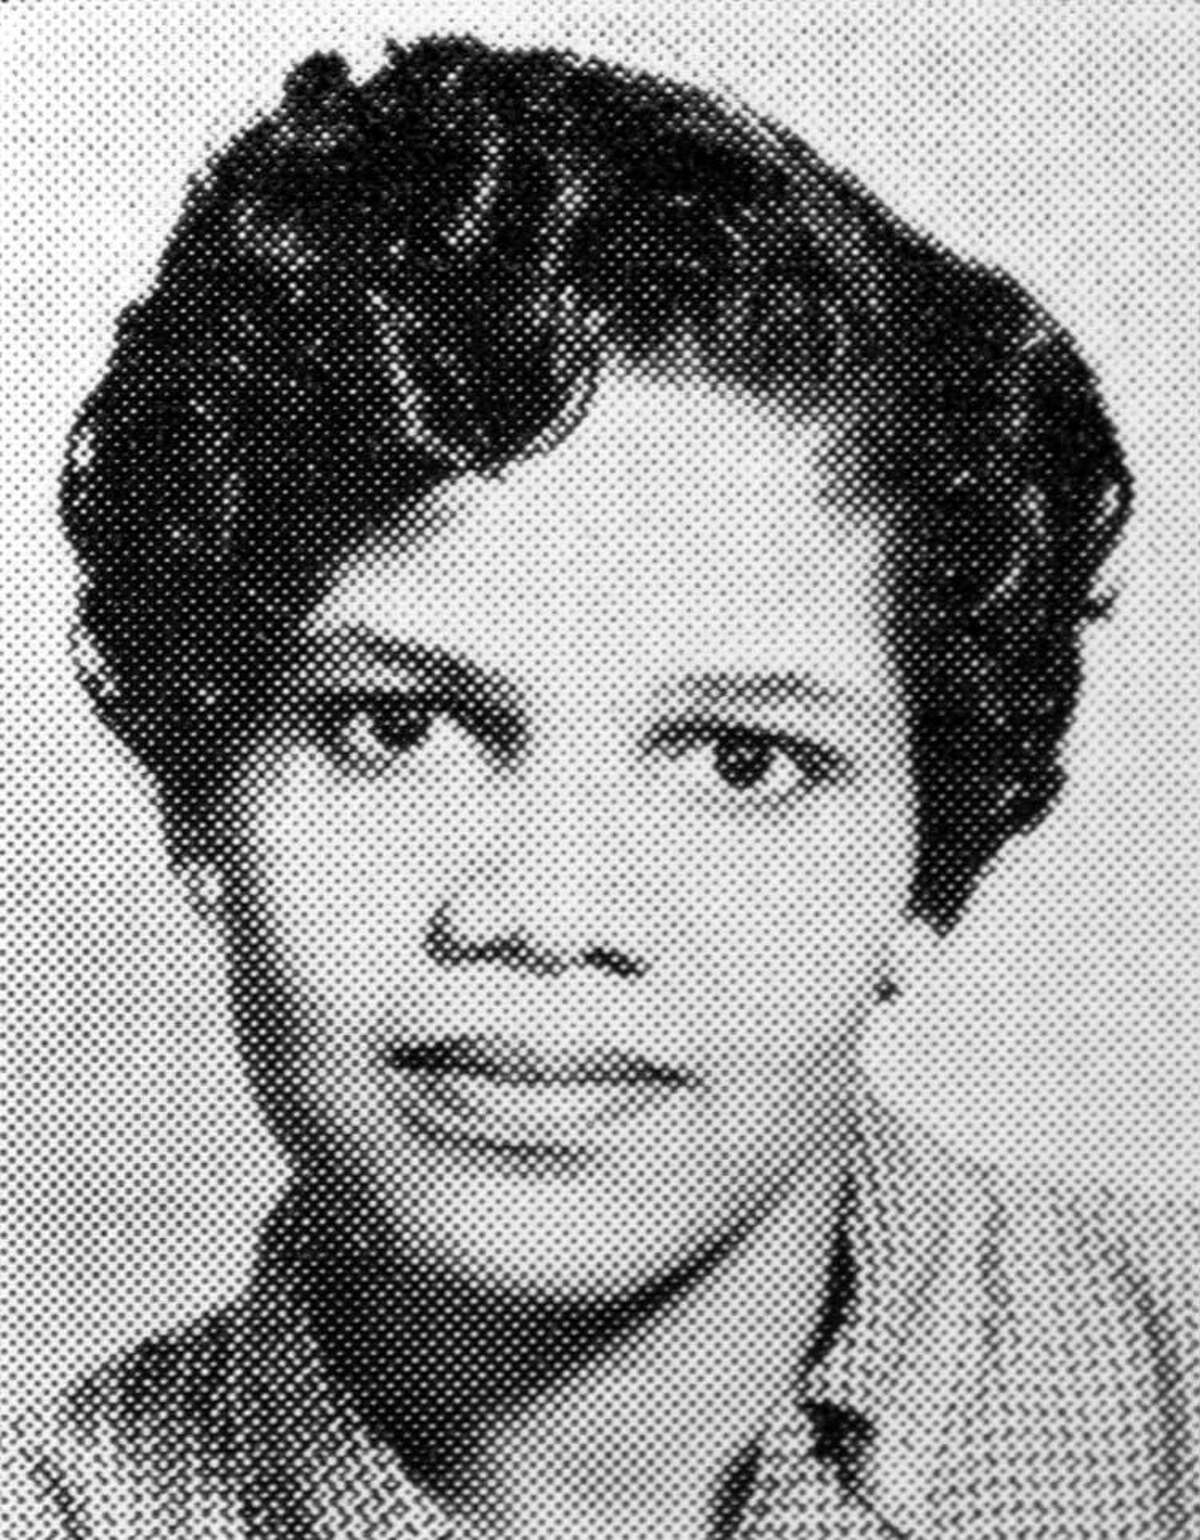 Dr. Edith Irby Jones, the first black intern at Baylor College of Medicine and later a prominent community advocate, died in Houston on Monday, July 15, 2019. This photo from Baylor is circa 1973.